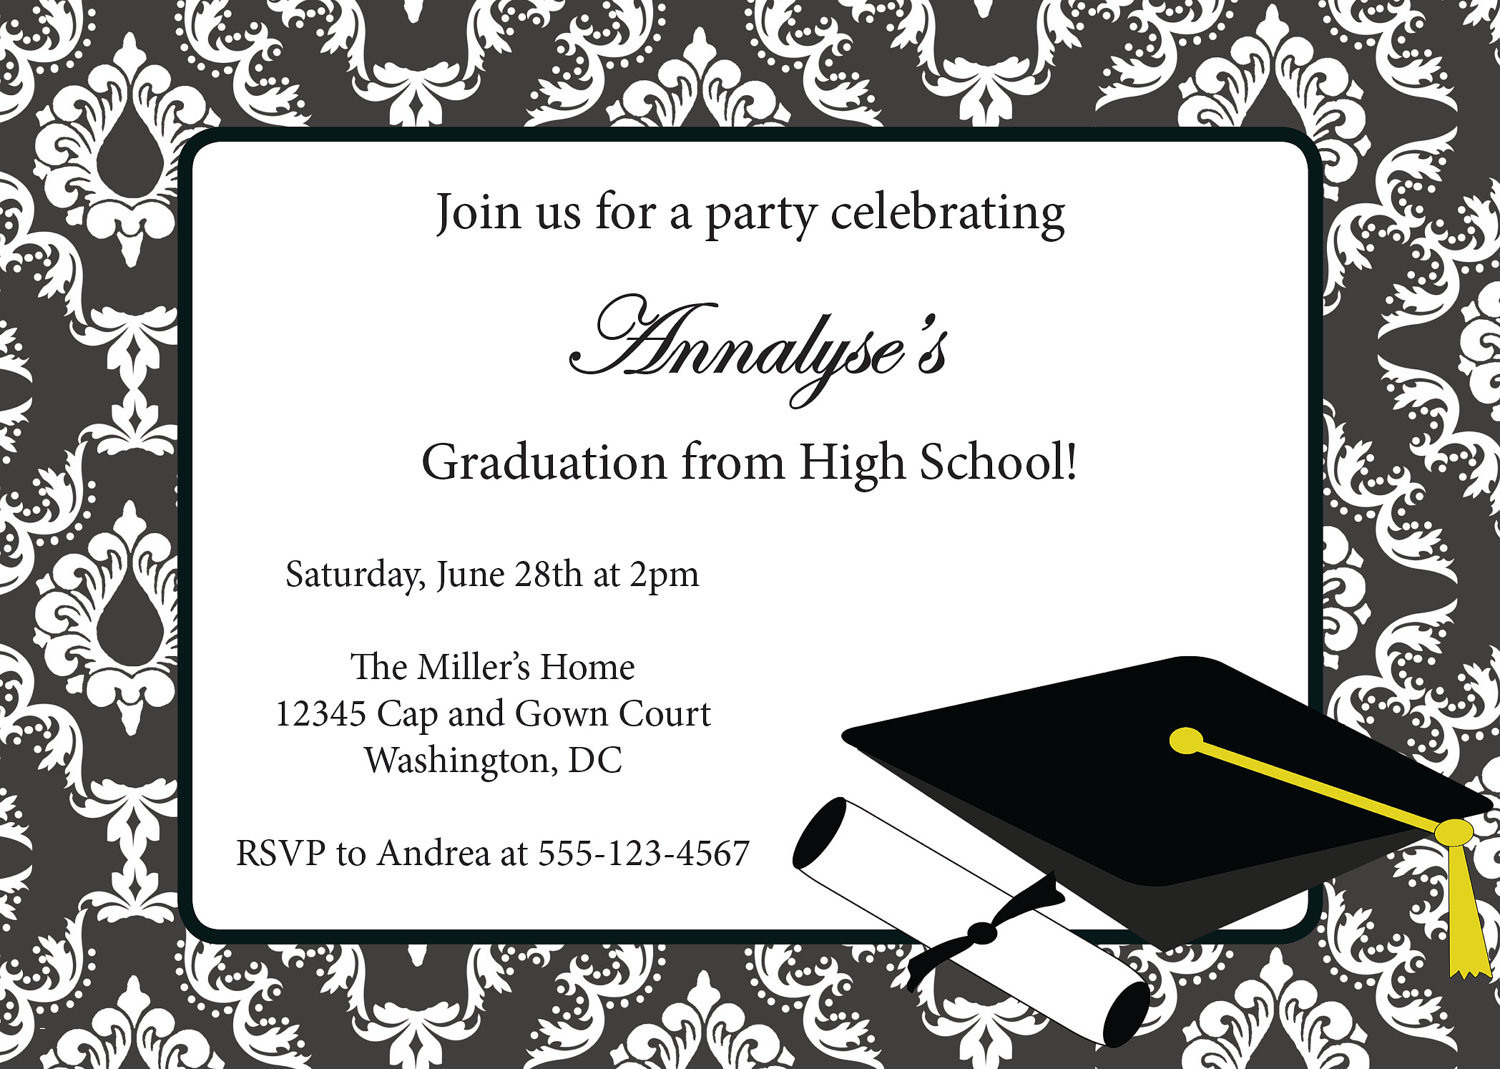 Printable Graduation Invitations Free | Download Them And Try To Solve - Free Printable Graduation Party Invitations